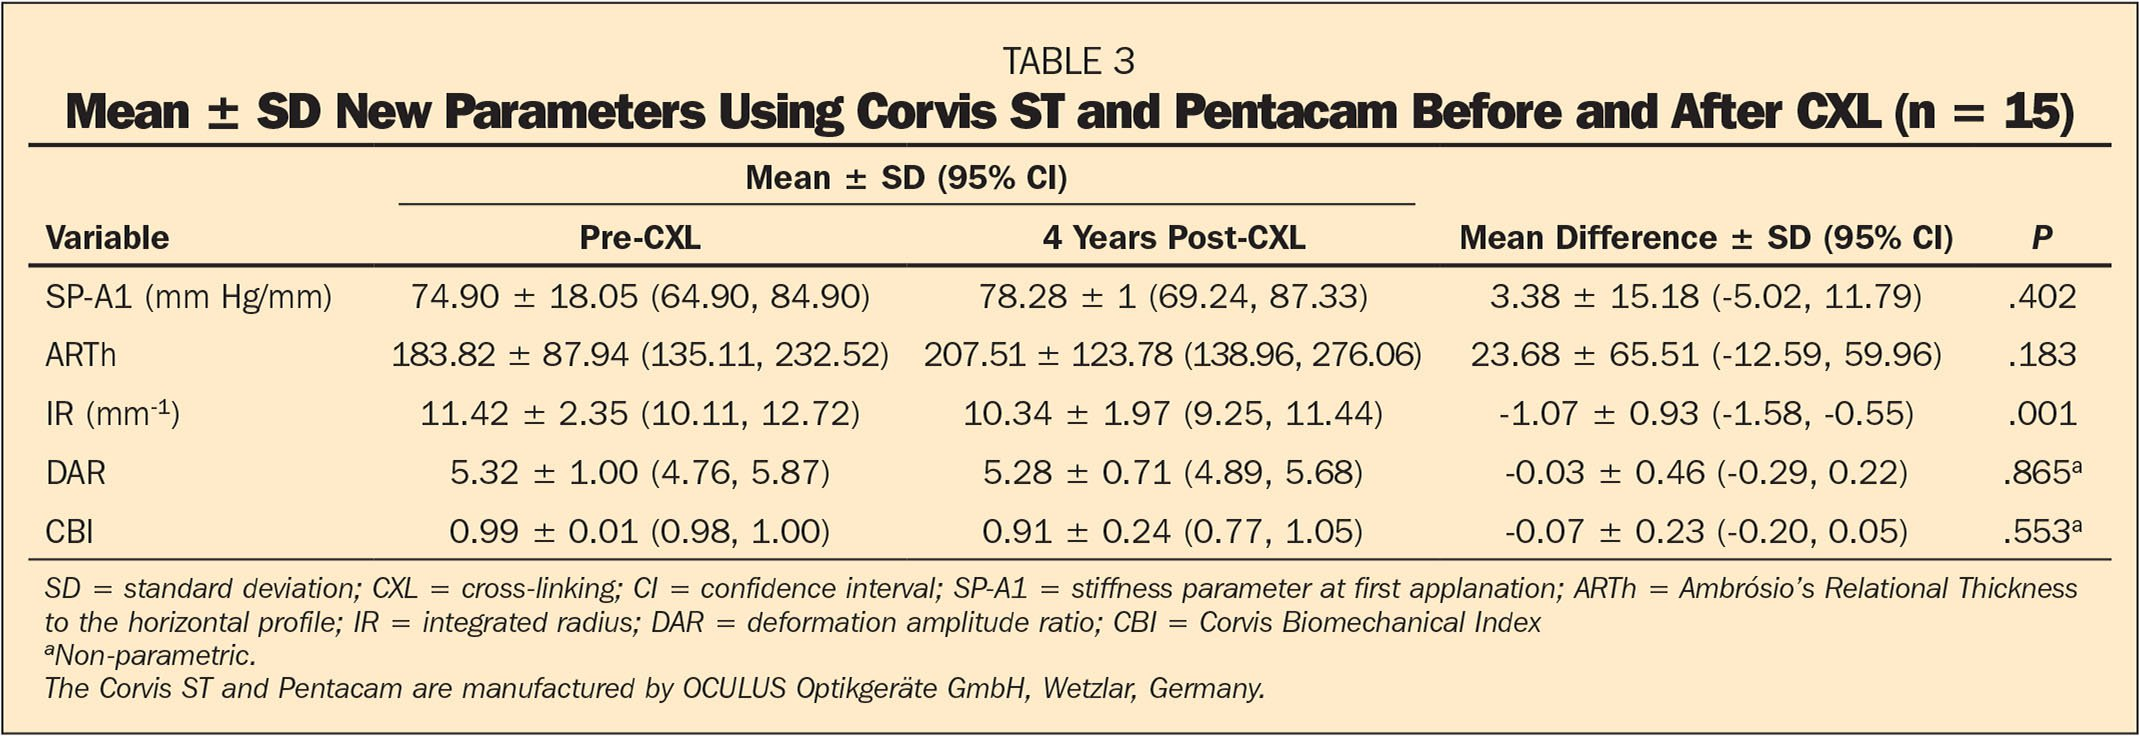 Mean ± SD New Parameters Using Corvis ST and Pentacam Before and After CXL (n = 15)